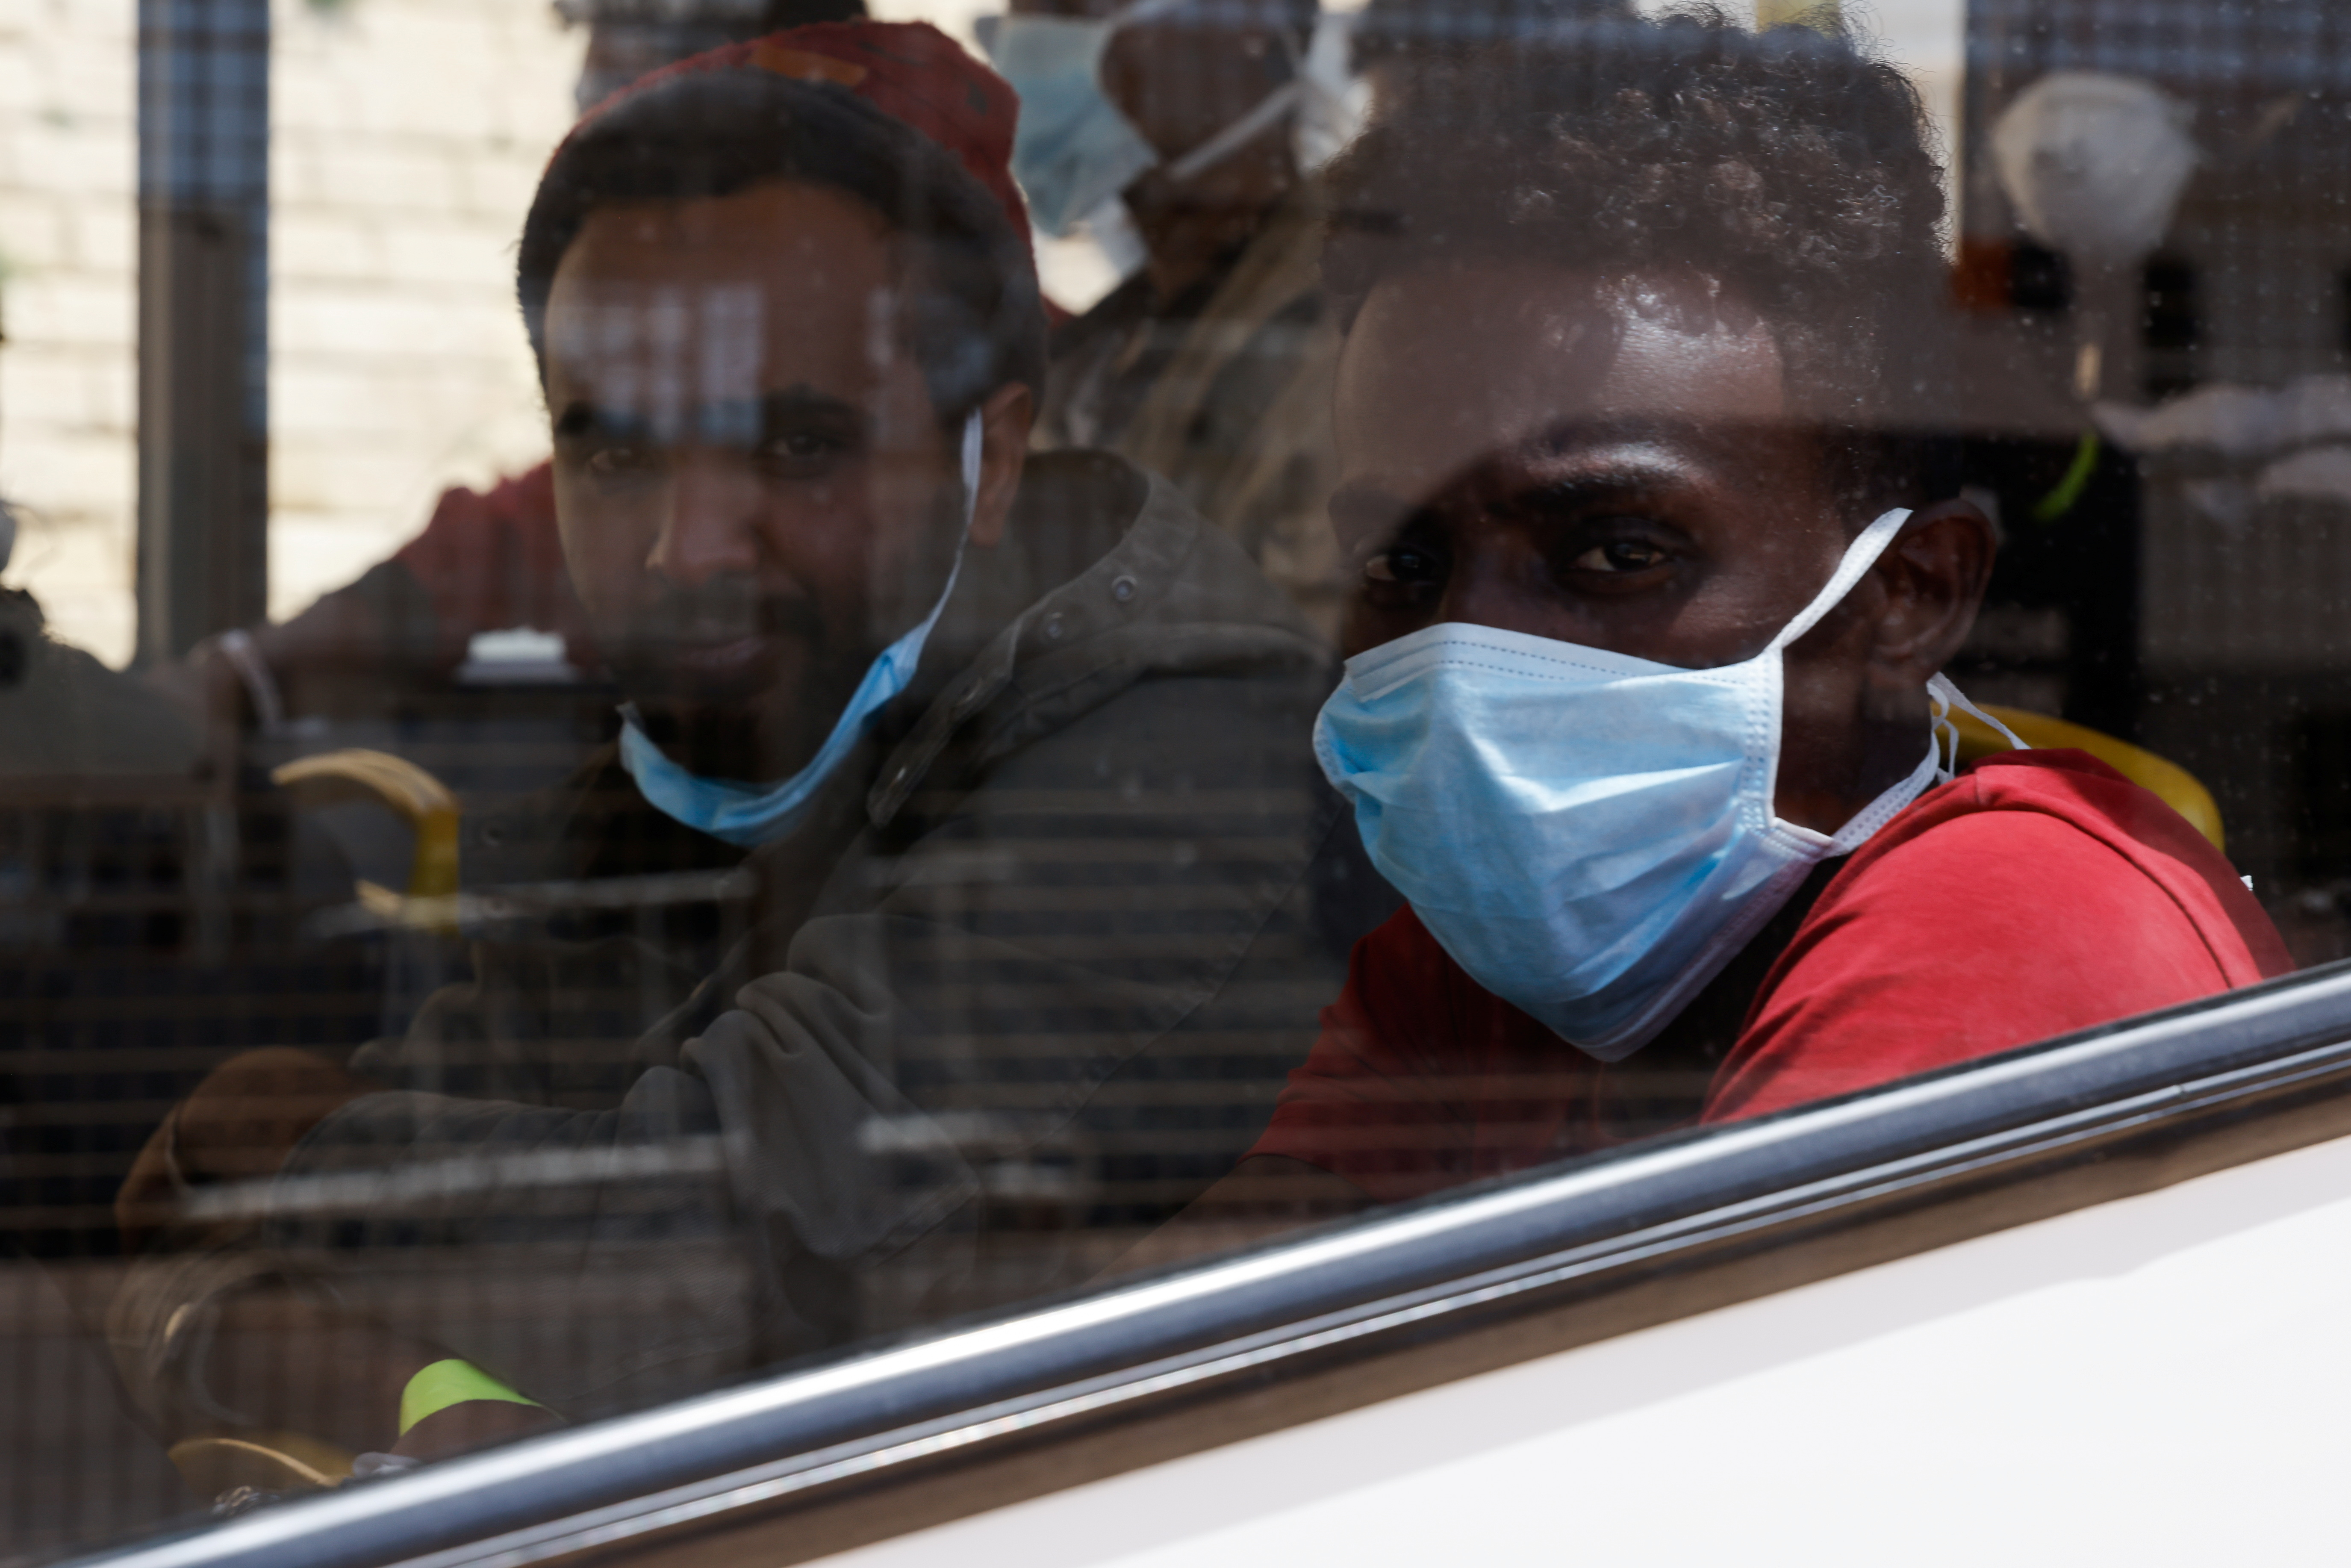 Rescued migrants sit after disembarking from an Armed Forces of Malta vessel in Senglea, in Valletta's Grand Harbour, as the coronavirus disease (COVID-19) outbreak continues in Malta May 11, 2021. REUTERS/Darrin Zammit Lupi